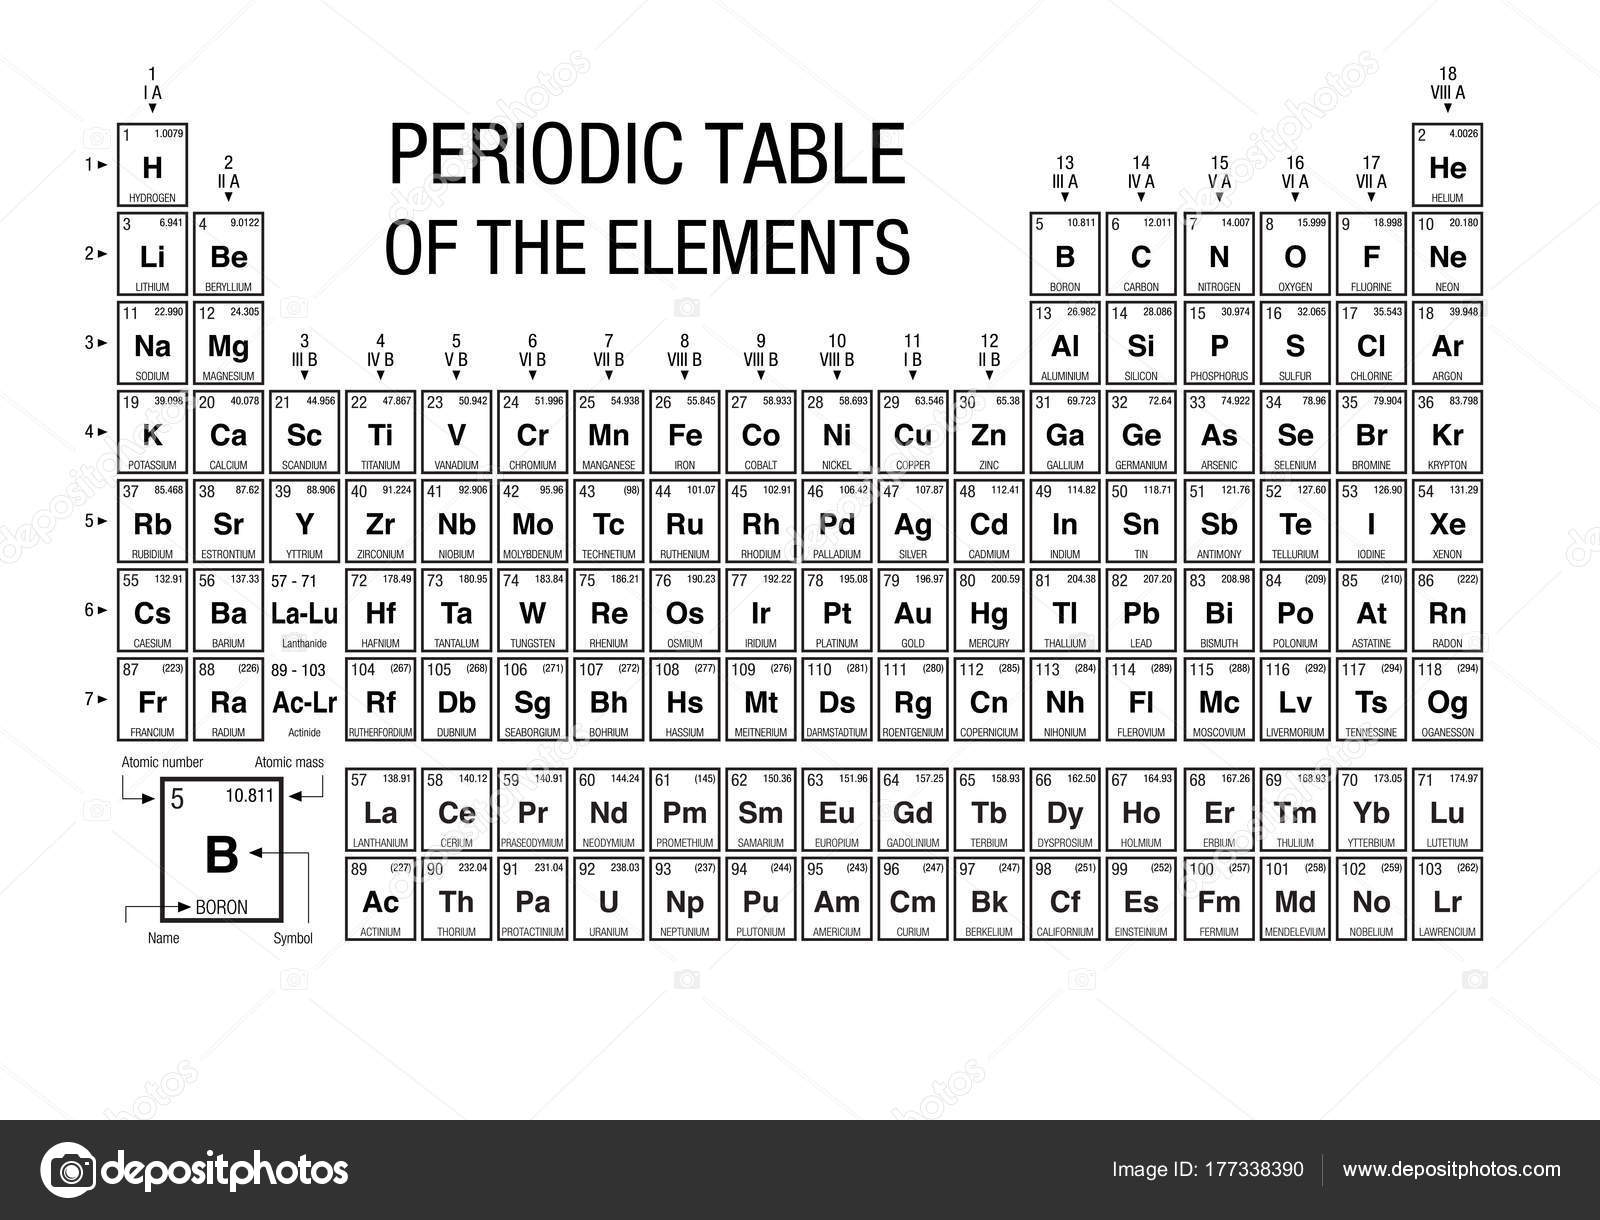 Periodic table elements black white new elements included november periodic table elements black white new elements included november 2016 stock vector urtaz Image collections